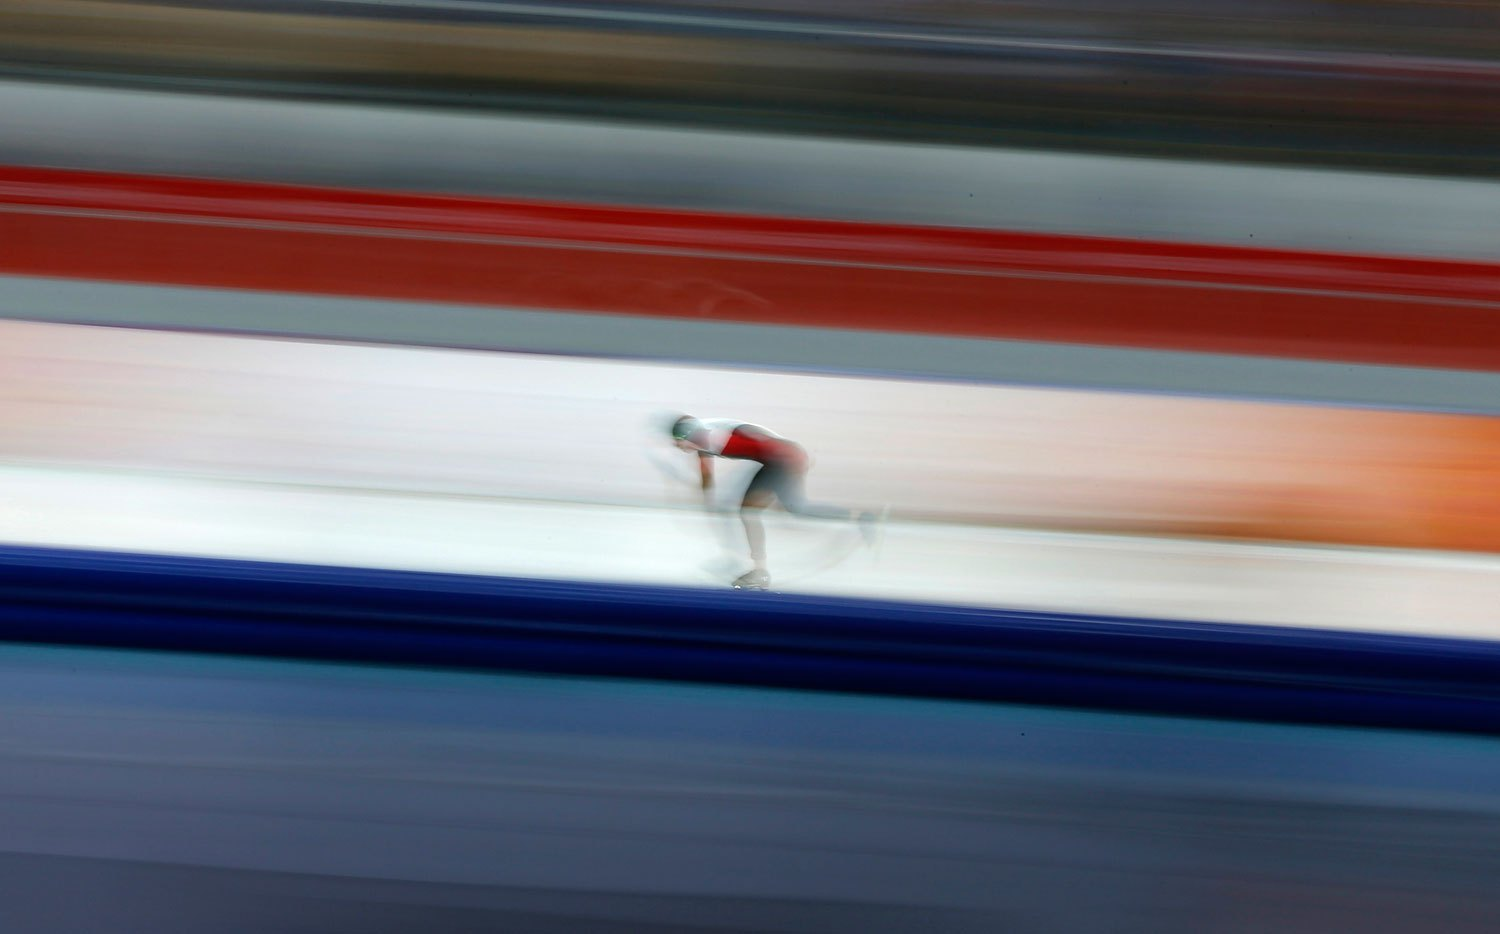 Brittany Schussler of Canada competes in the women's 3000 meters speed skating race, Feb. 9, 2014.